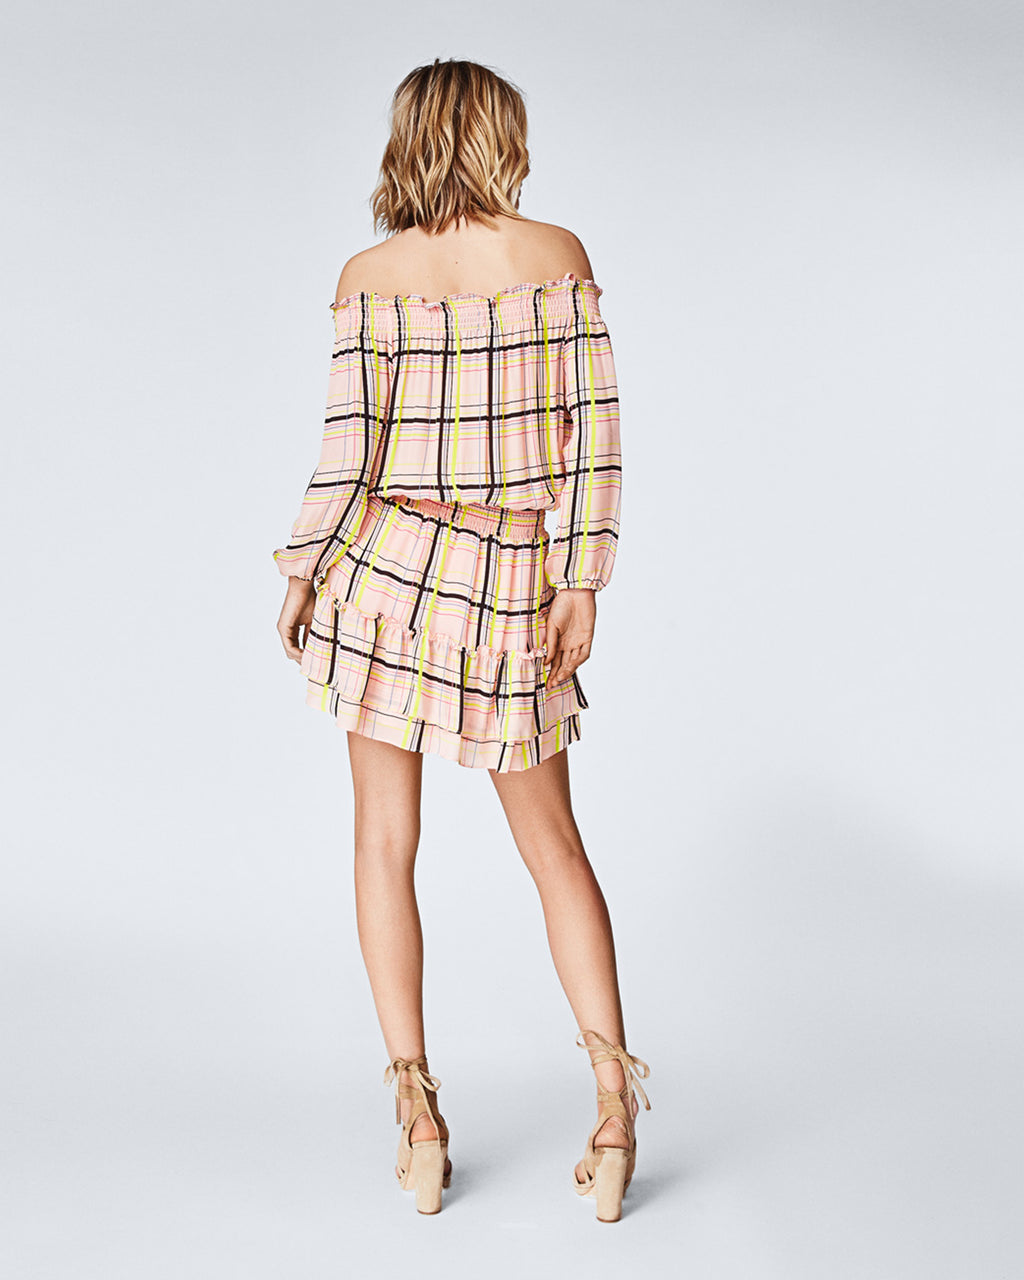 BO10143 - ELECTRIC PLAID SMOCKED DRESS - dresses - short - In a light silk, this off the shoulder dress features a smocked silhouette for the perfect throw on summer dress. This pink dress features a vibrant plaid print, and is finished with a ruffled hem. Unlined. final sale